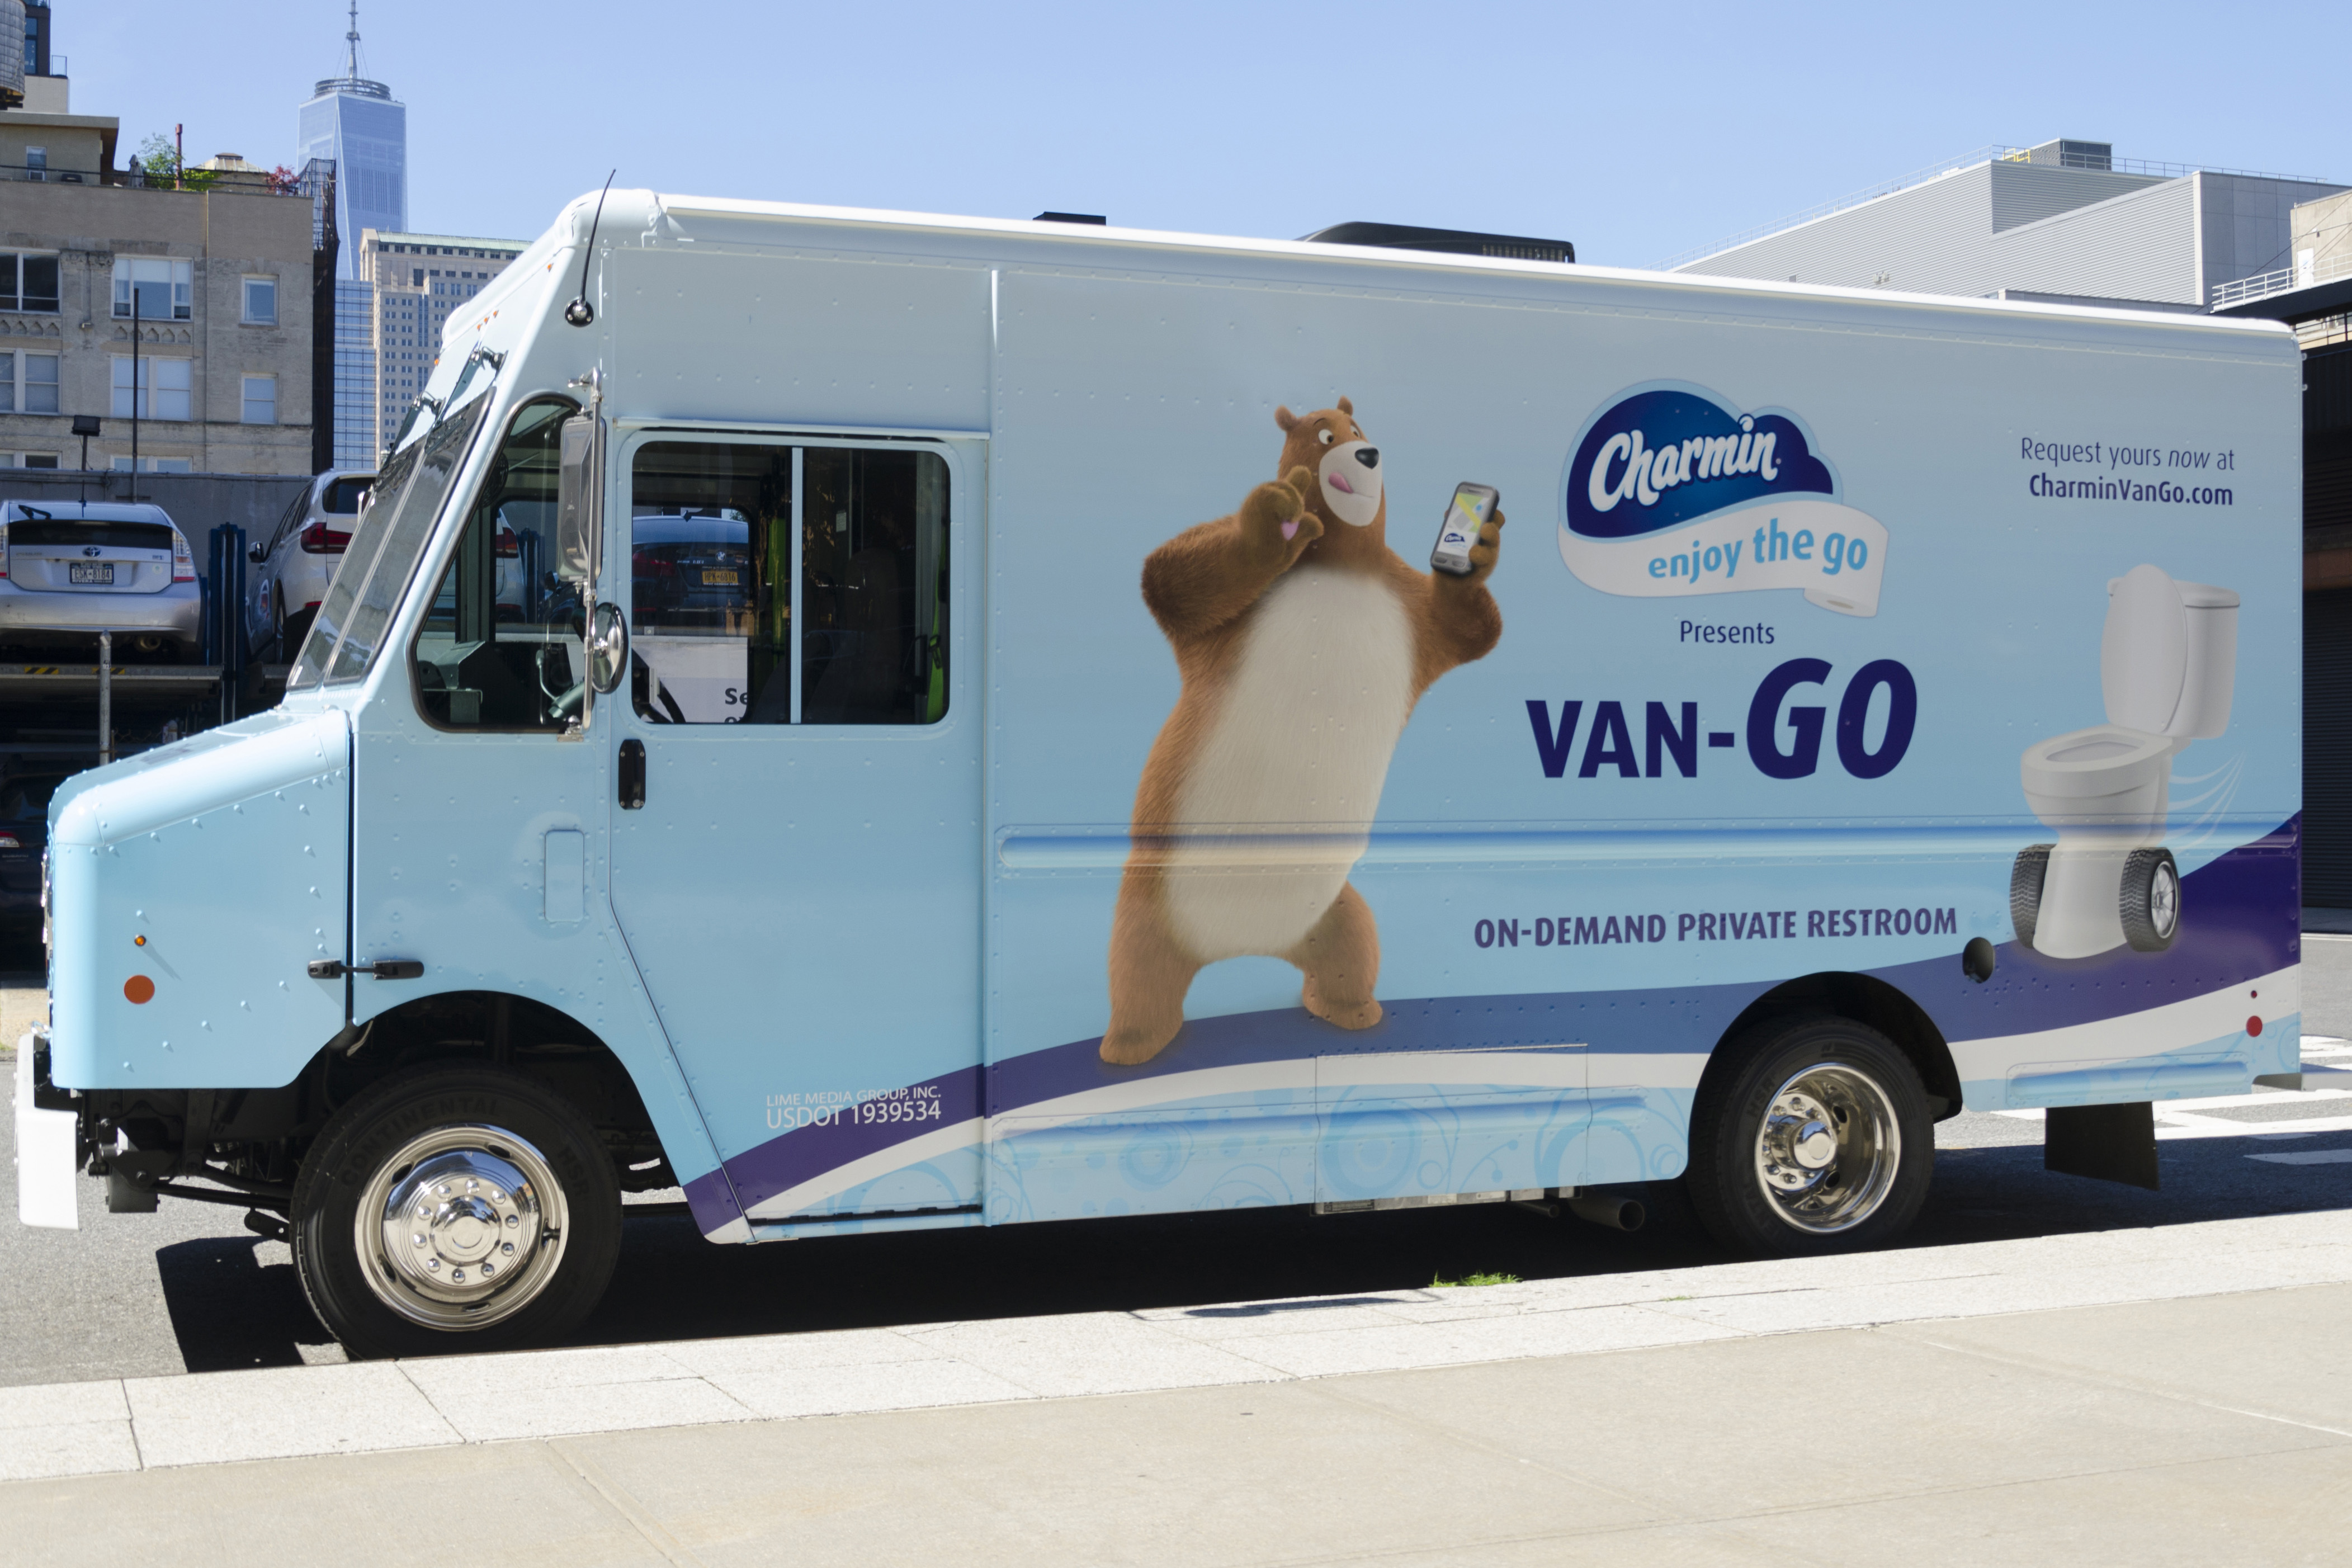 Charmin\'s \'Van-Go\' is the on-demand toilet NYC deserves